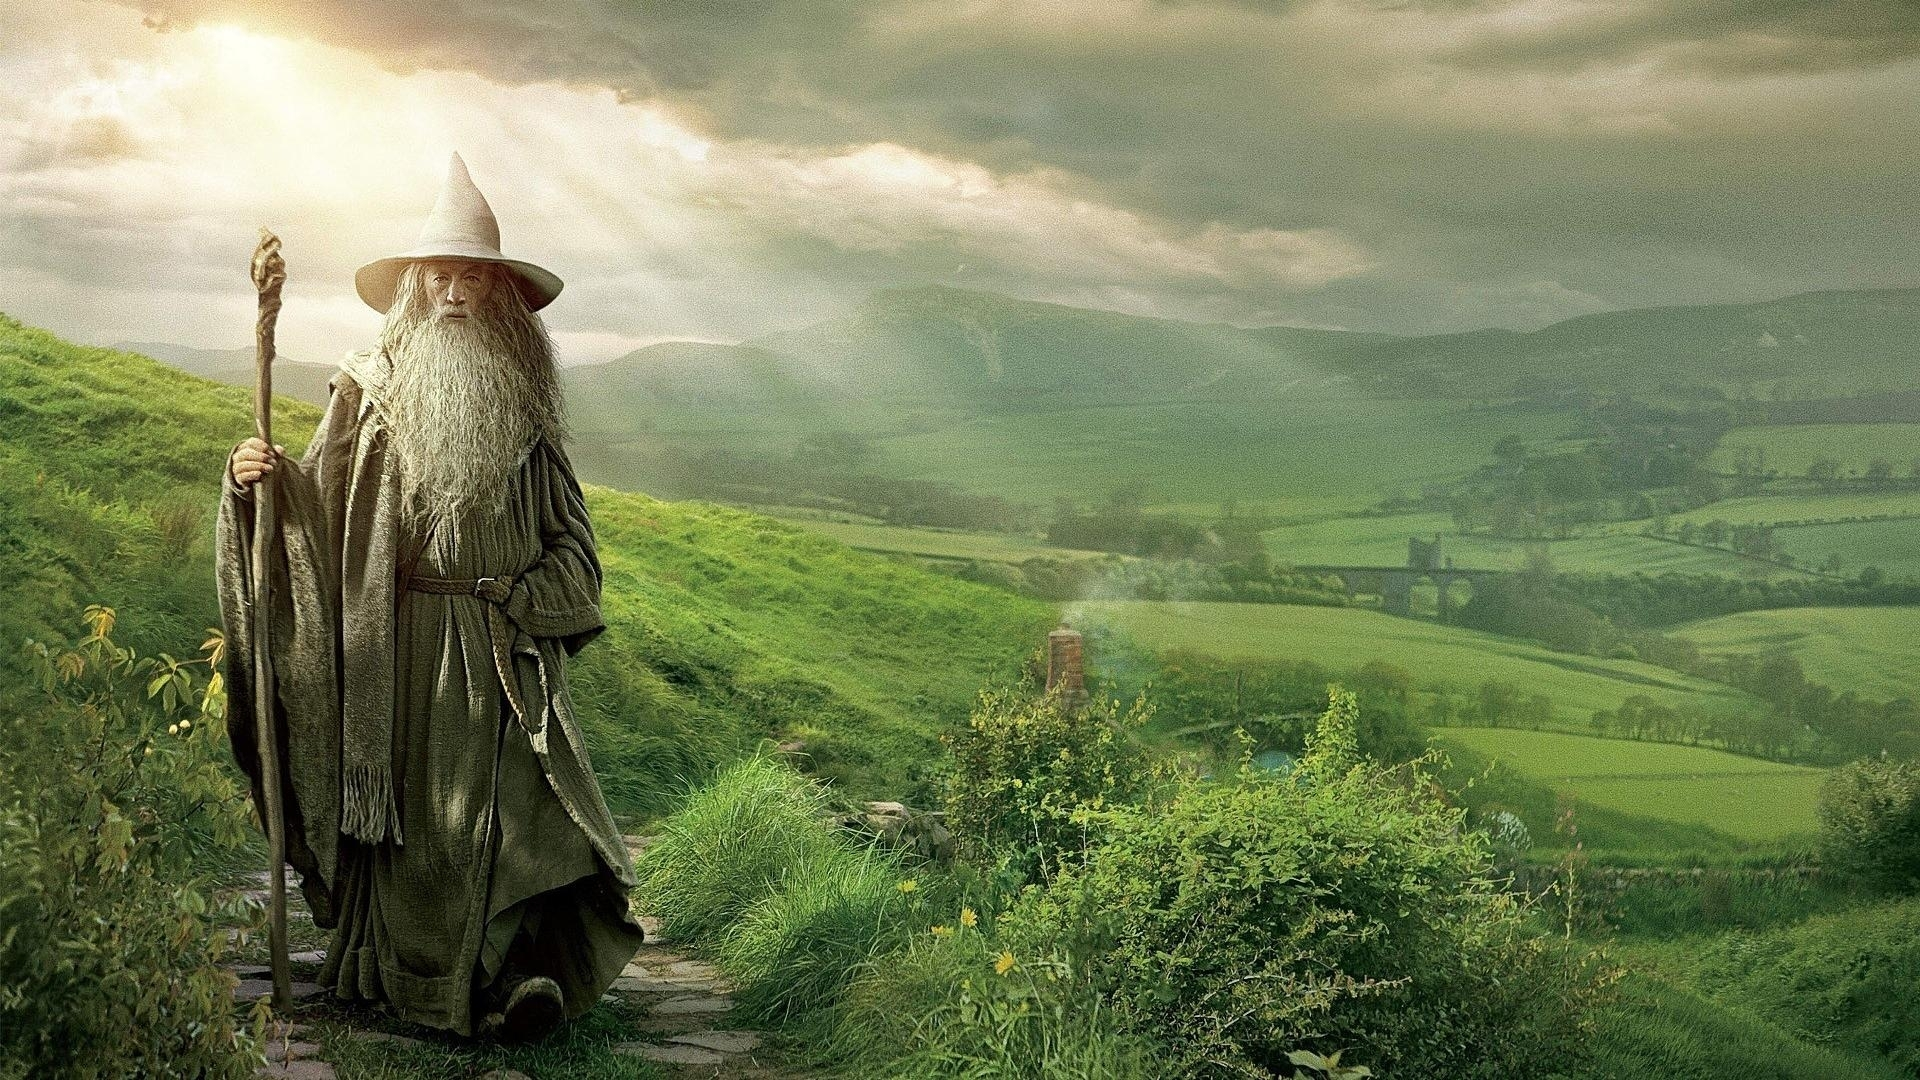 gandalf wizards the hobbit middle-earth ian mckellen wallpaper | (4541)